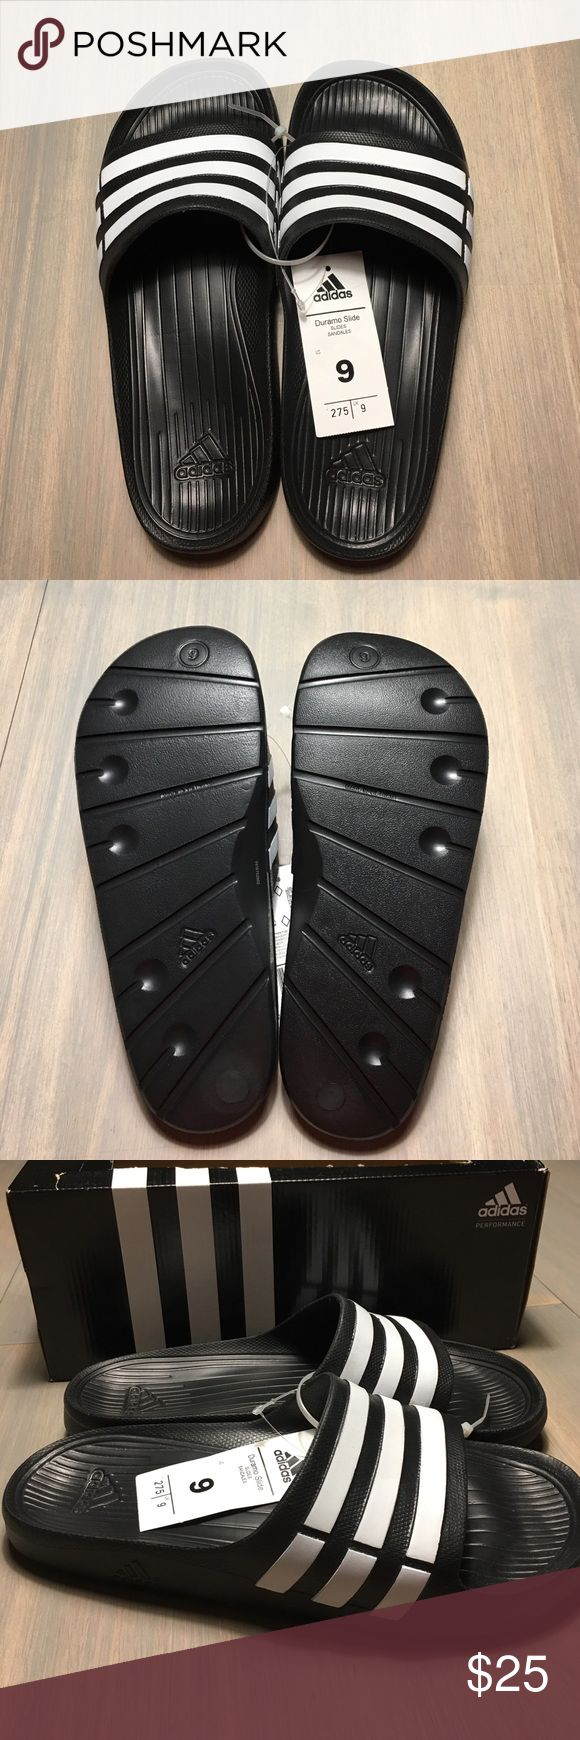 Adidas Duramo Slides - Size 9 - NIB Comfortable slides in black/white stripes. Brand new with box - never worn. Gender neutral. Size 9 for men or women with wide feet. Would fit women size 10-10.5. Message me for measurements. Adidas Shoes Sandals & Flip-Flops